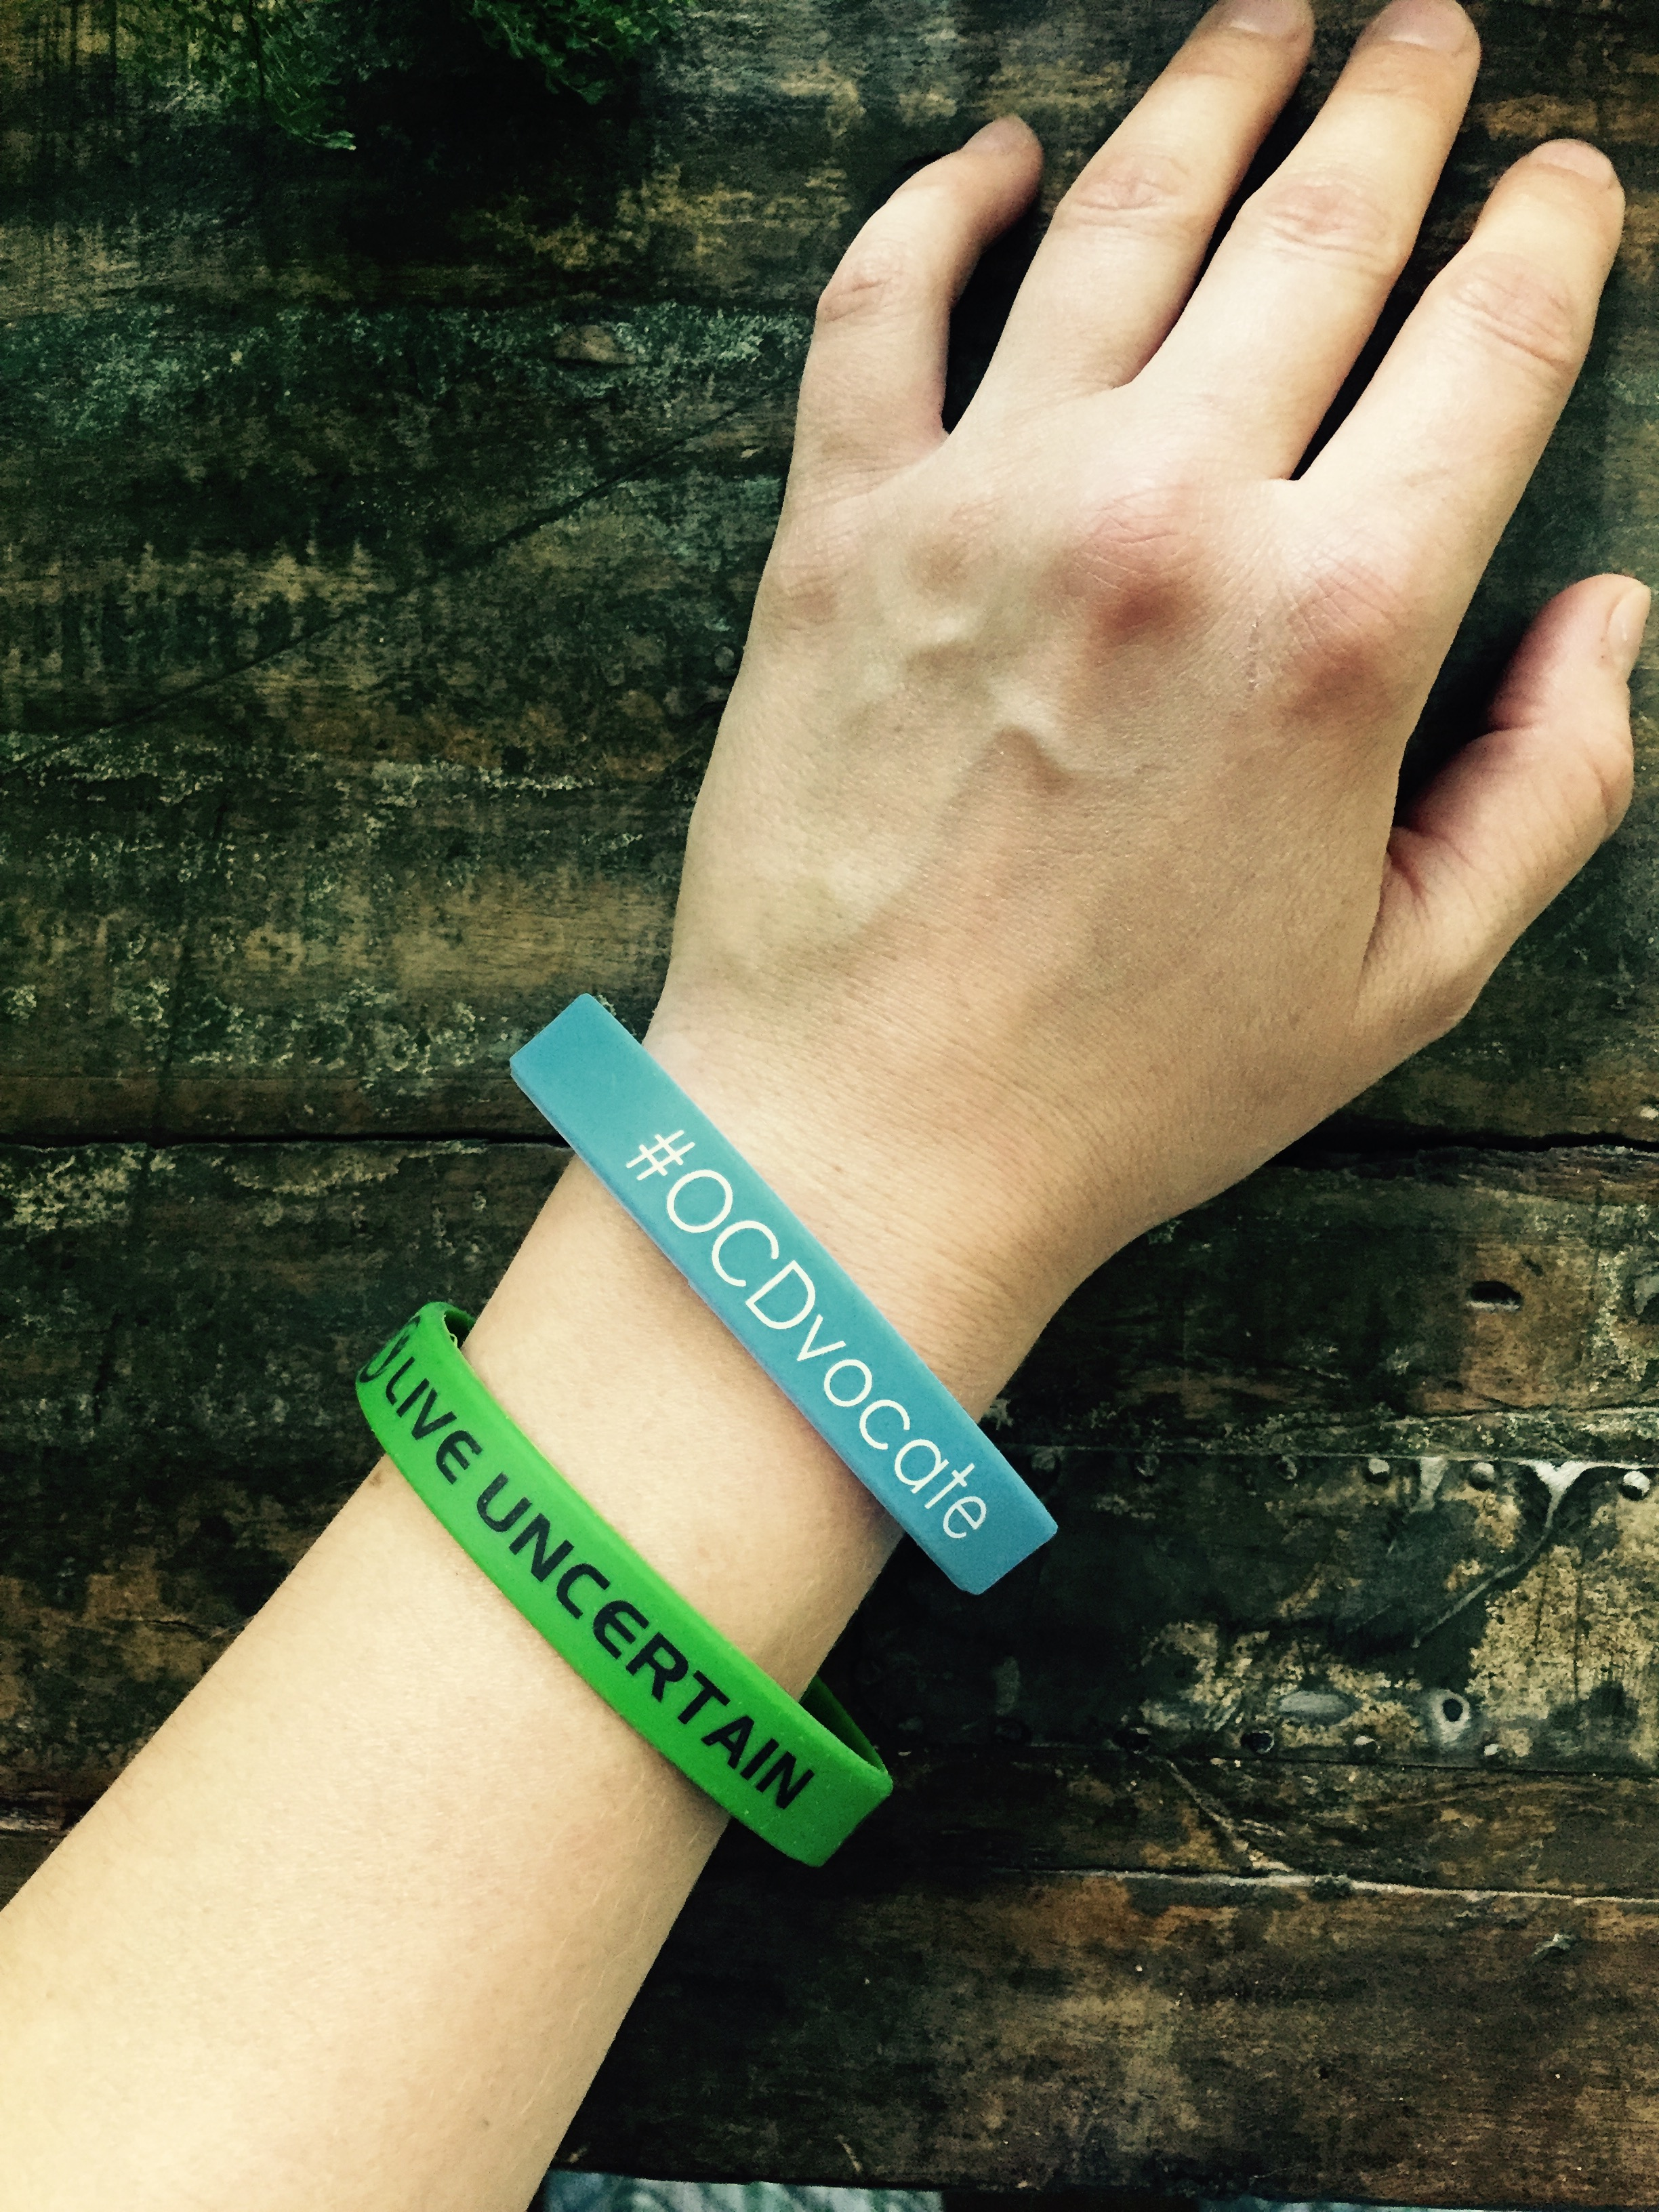 awareness ocd allergy adult food ribbon teal bracelet magnet wristband